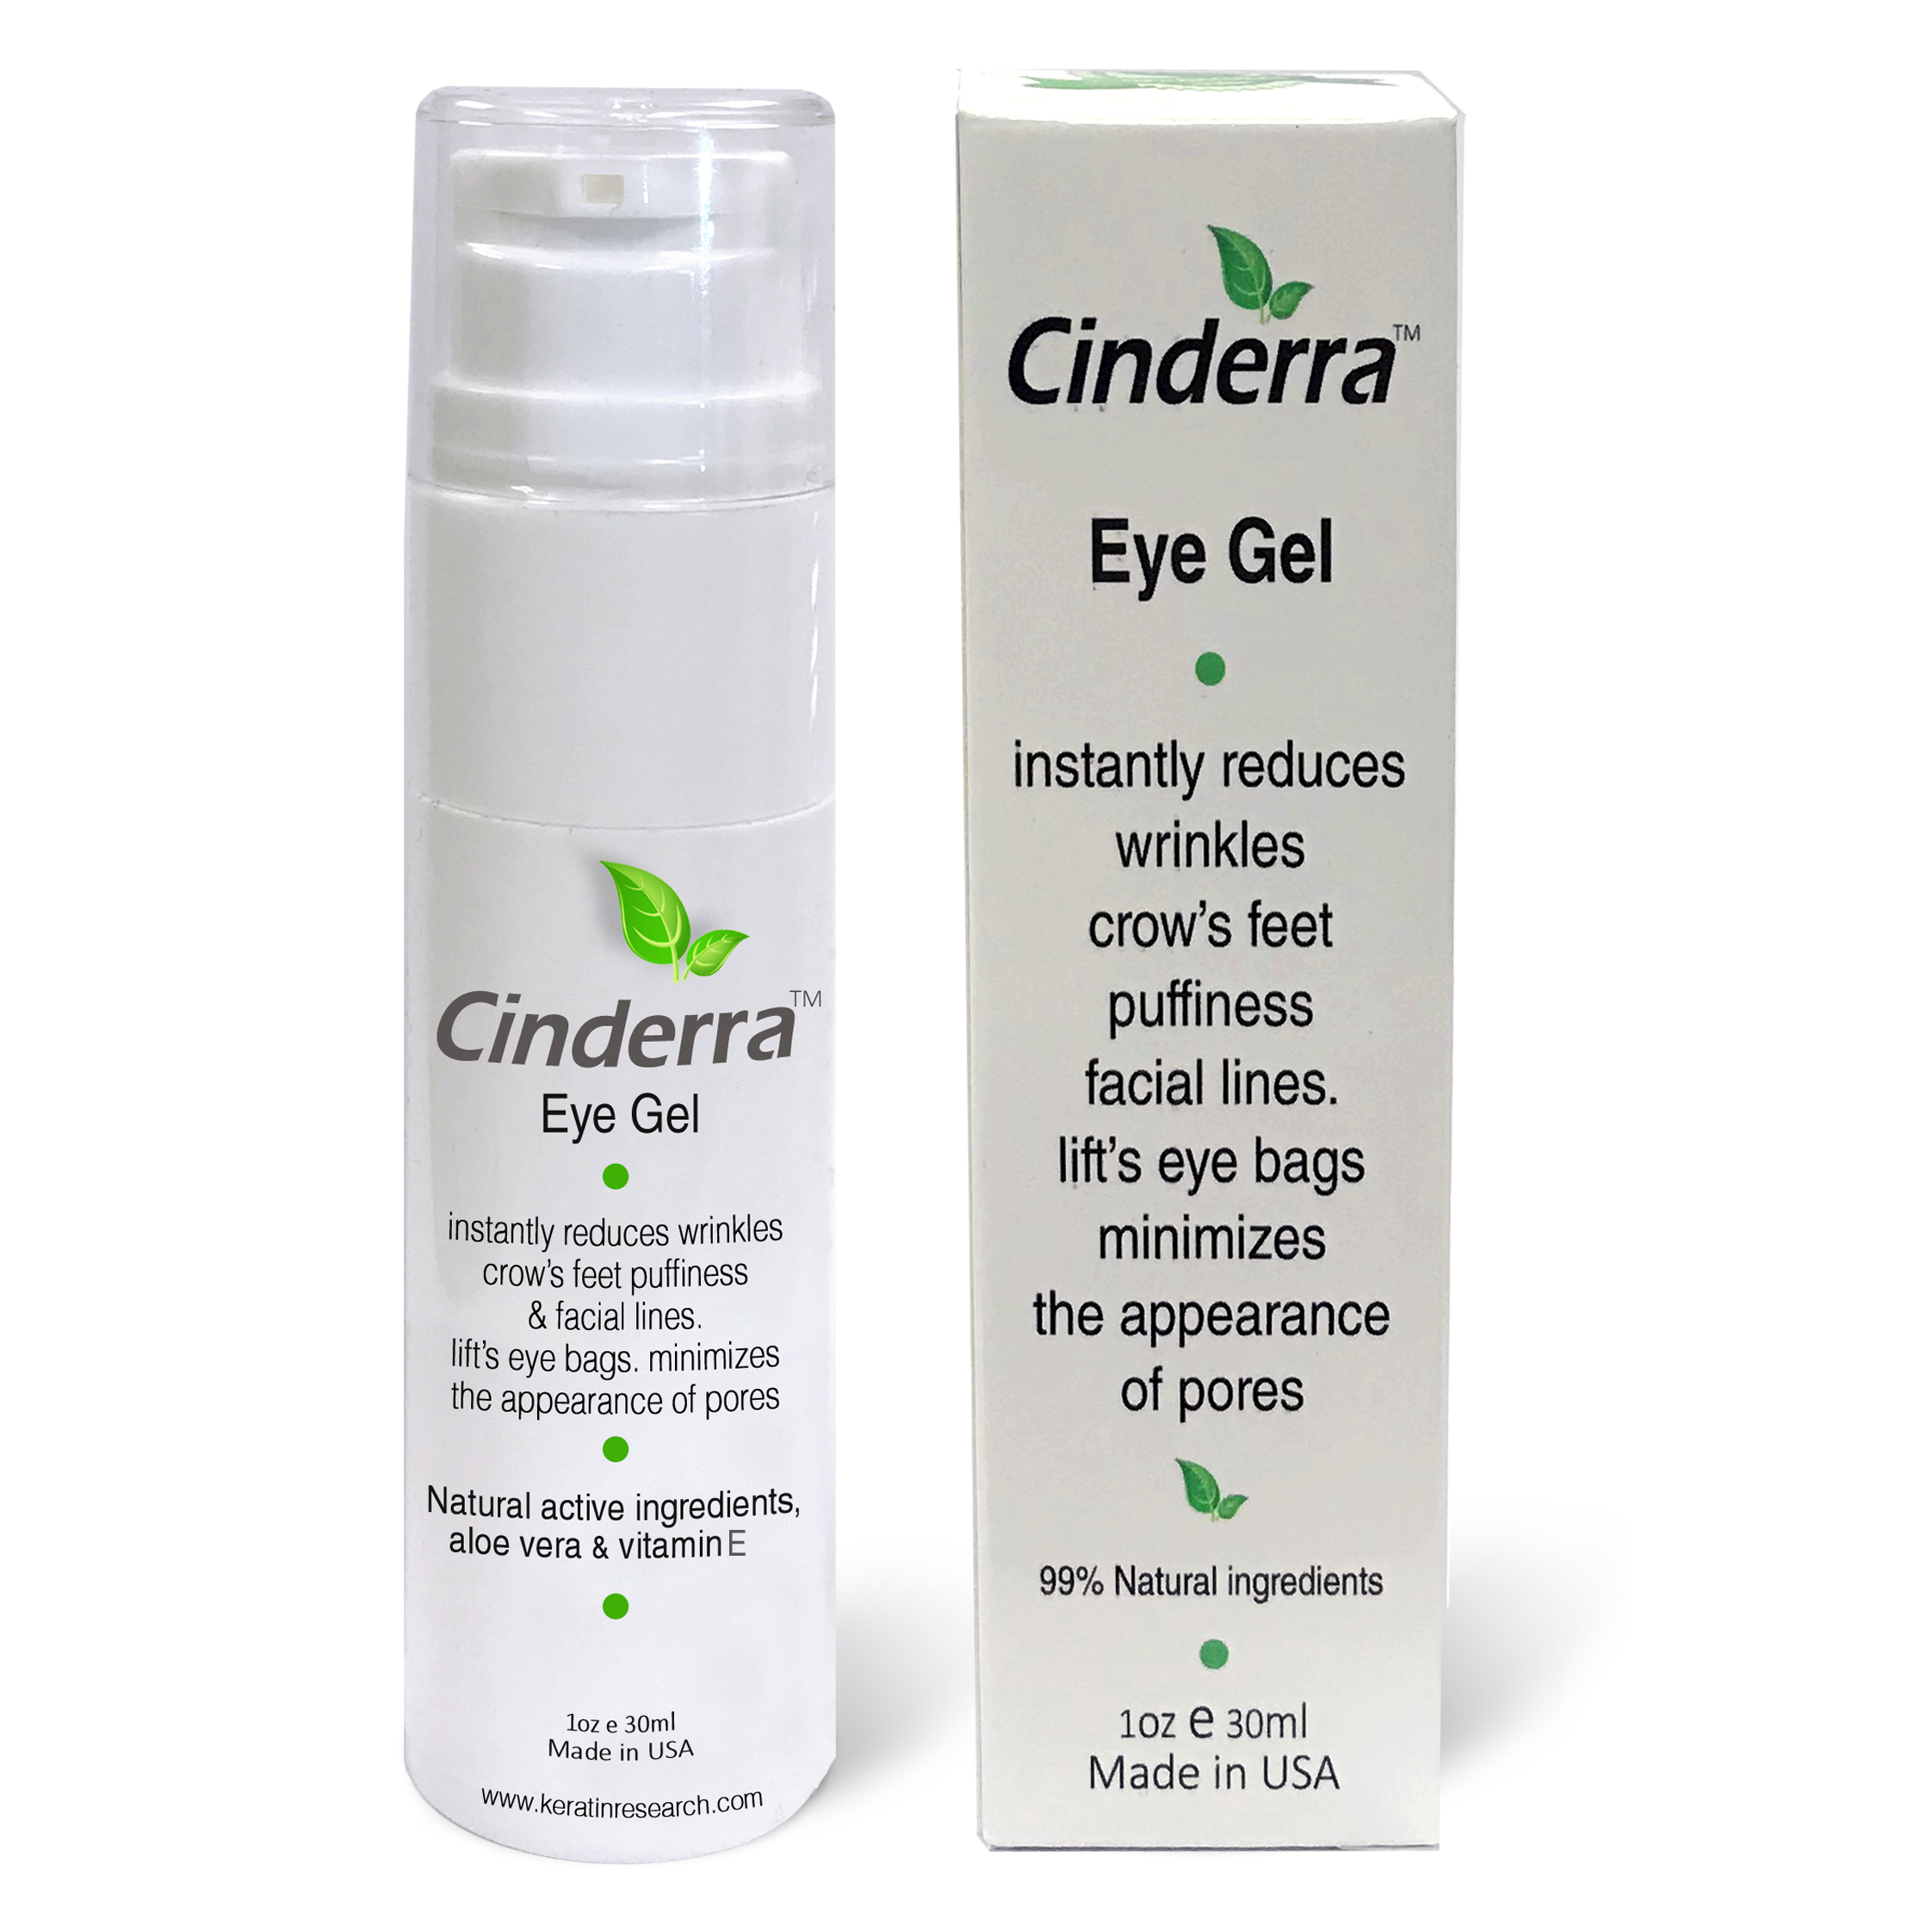 Cinderra Eye Gel 30ml Instantly Reduces Wrinkles Crow's Feet Puffiness & Facial Lines Lift's Eye Bags Minimizes the Appearance of Pores, Works with Makeup Natural Ingredients Ageless Look